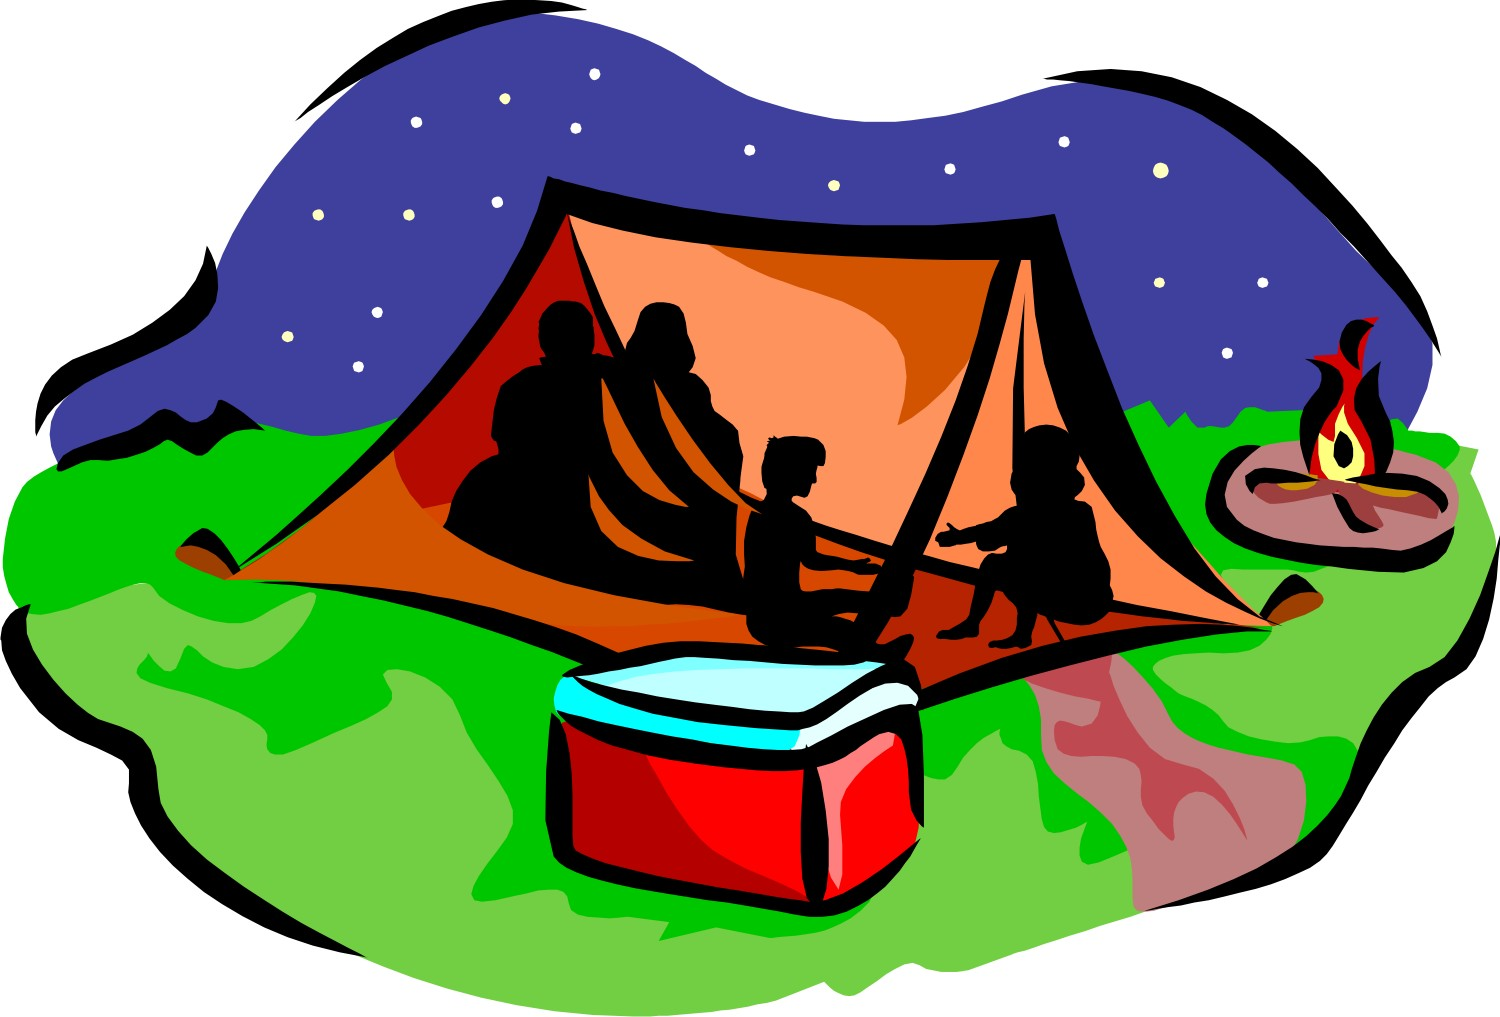 Kids camping cartoon